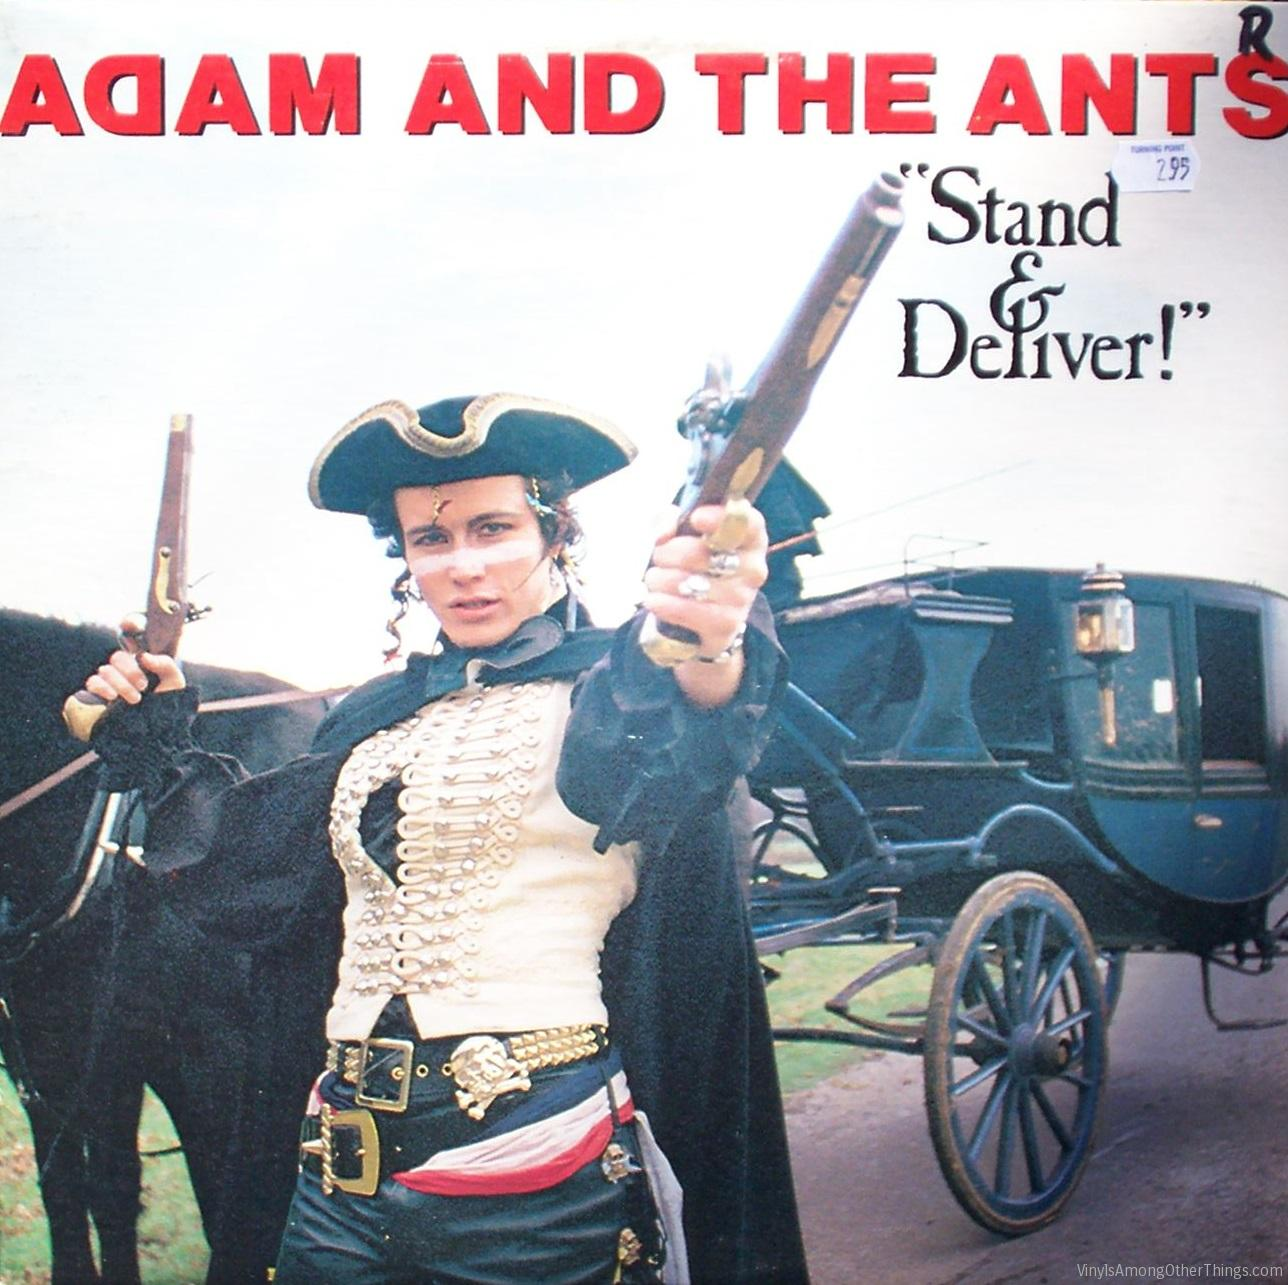 187 Adam And The Ants Stand Amp Deliver